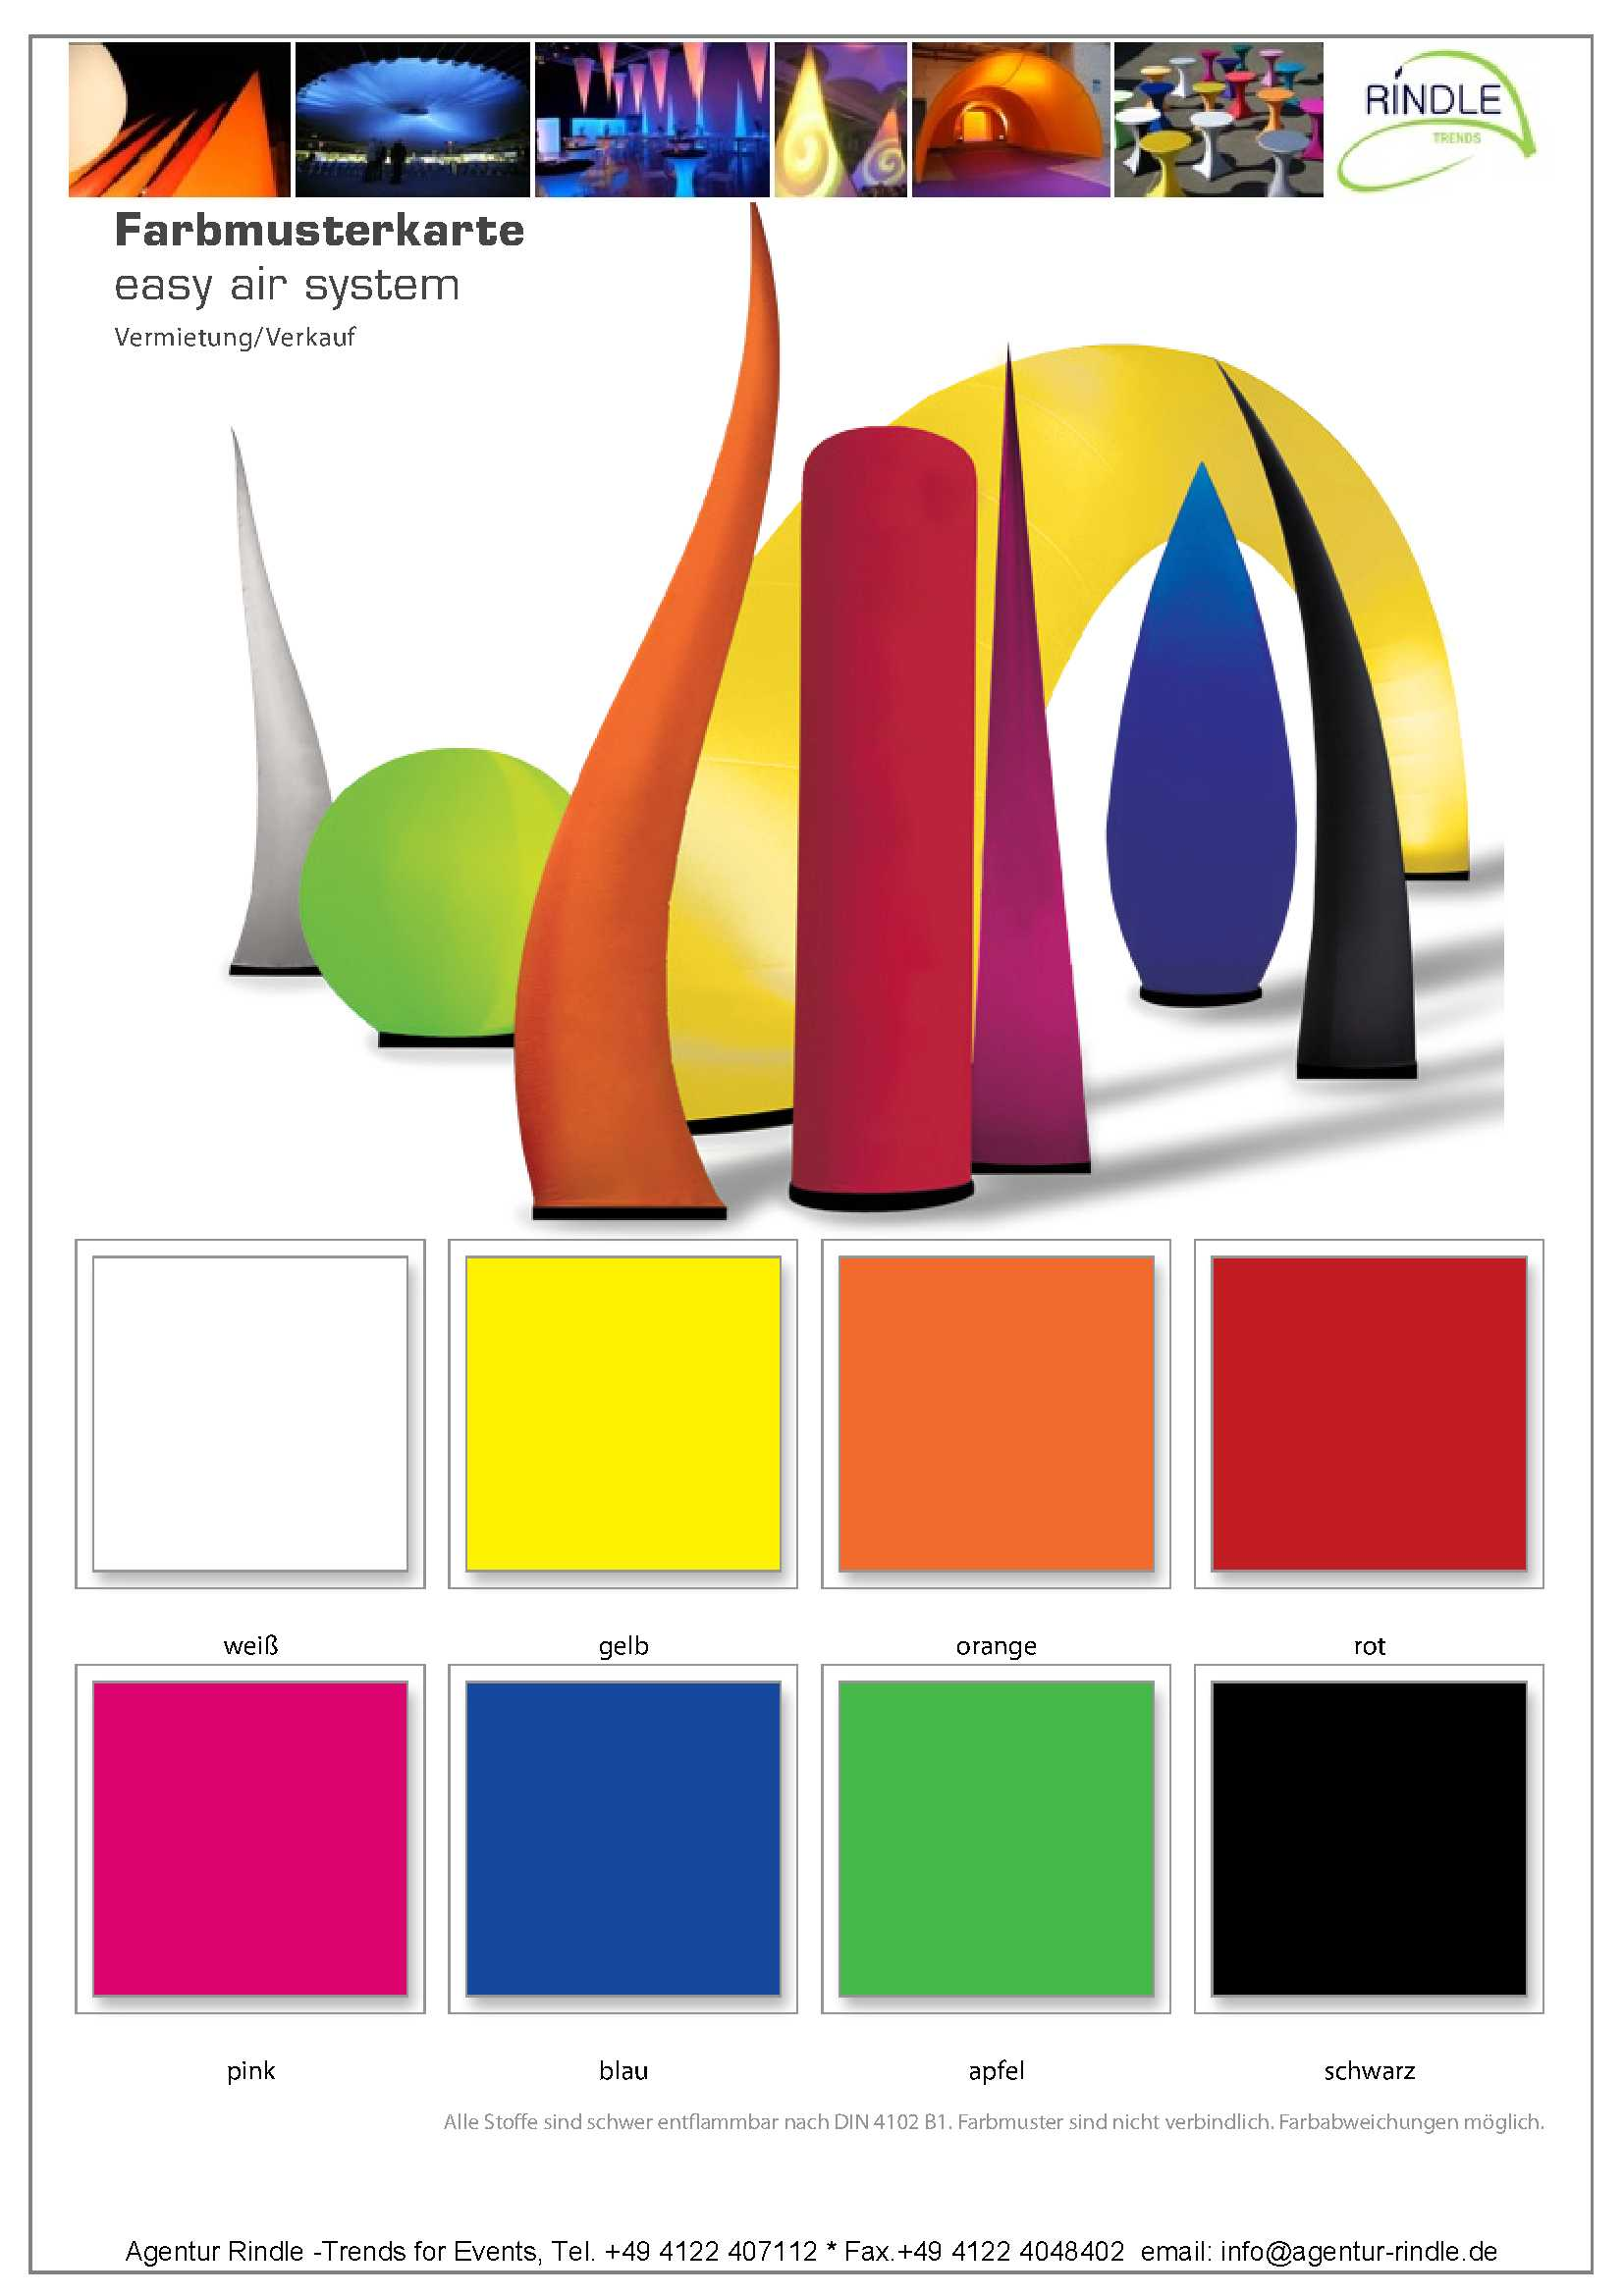 Inflatables Sculptures LED CONE - Agentur Rindle - Trends for Events